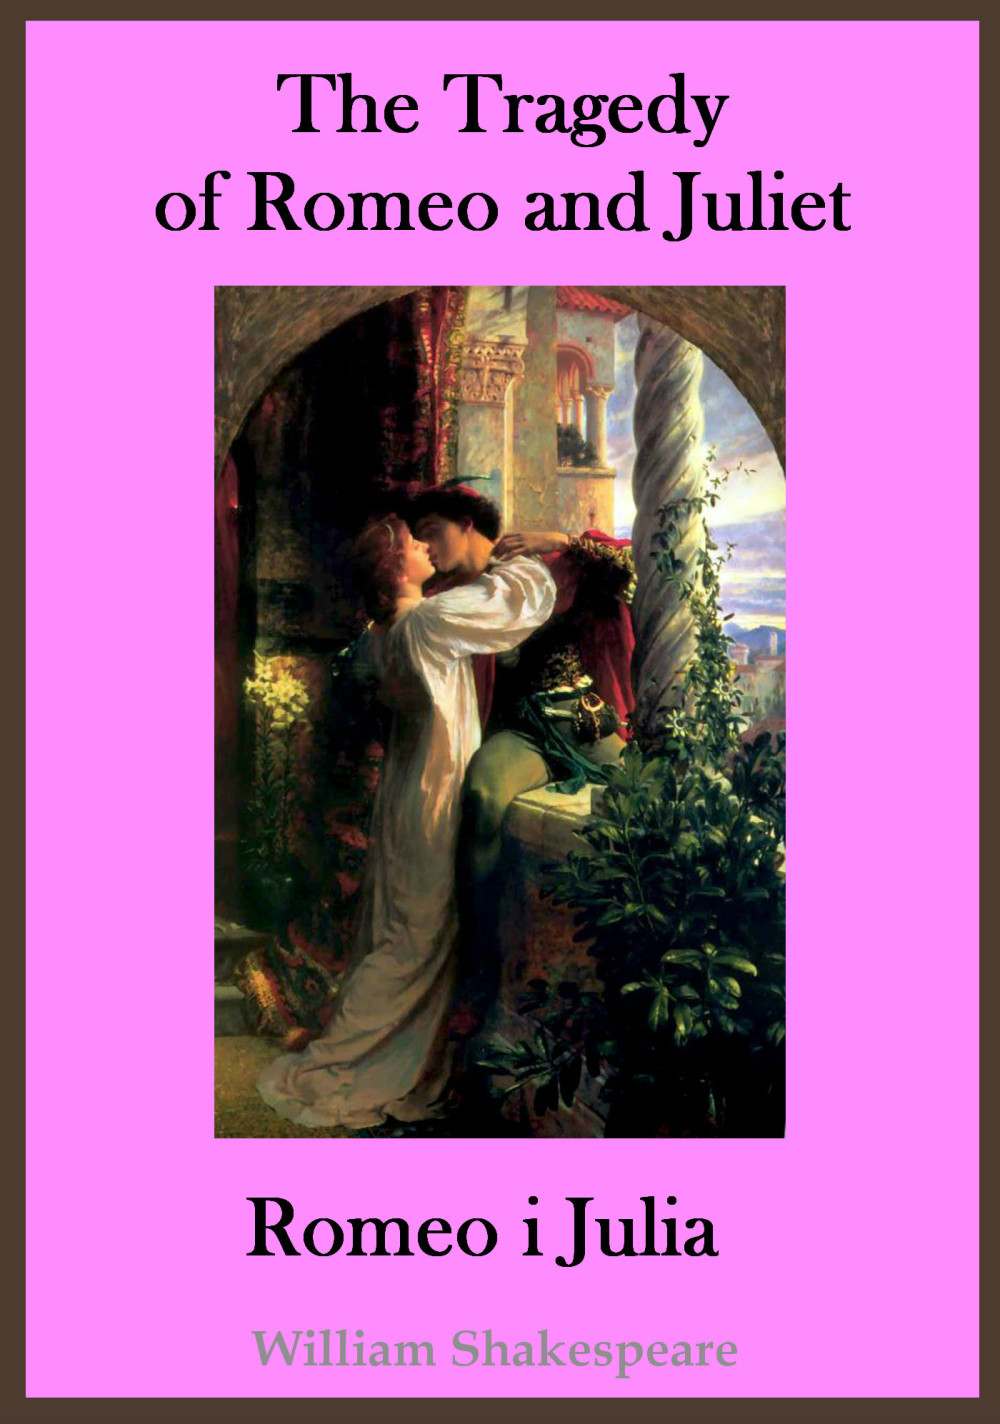 a theme of death in romeo and juliet by william shakespeare Romeo and juliet themes include love v lust, the role of fate, the role of women, love vs hate, and the manipulation of time slide 1 of 6 before addressing themes in romeo and juliet , it is important to define exactly what i mean by theme.